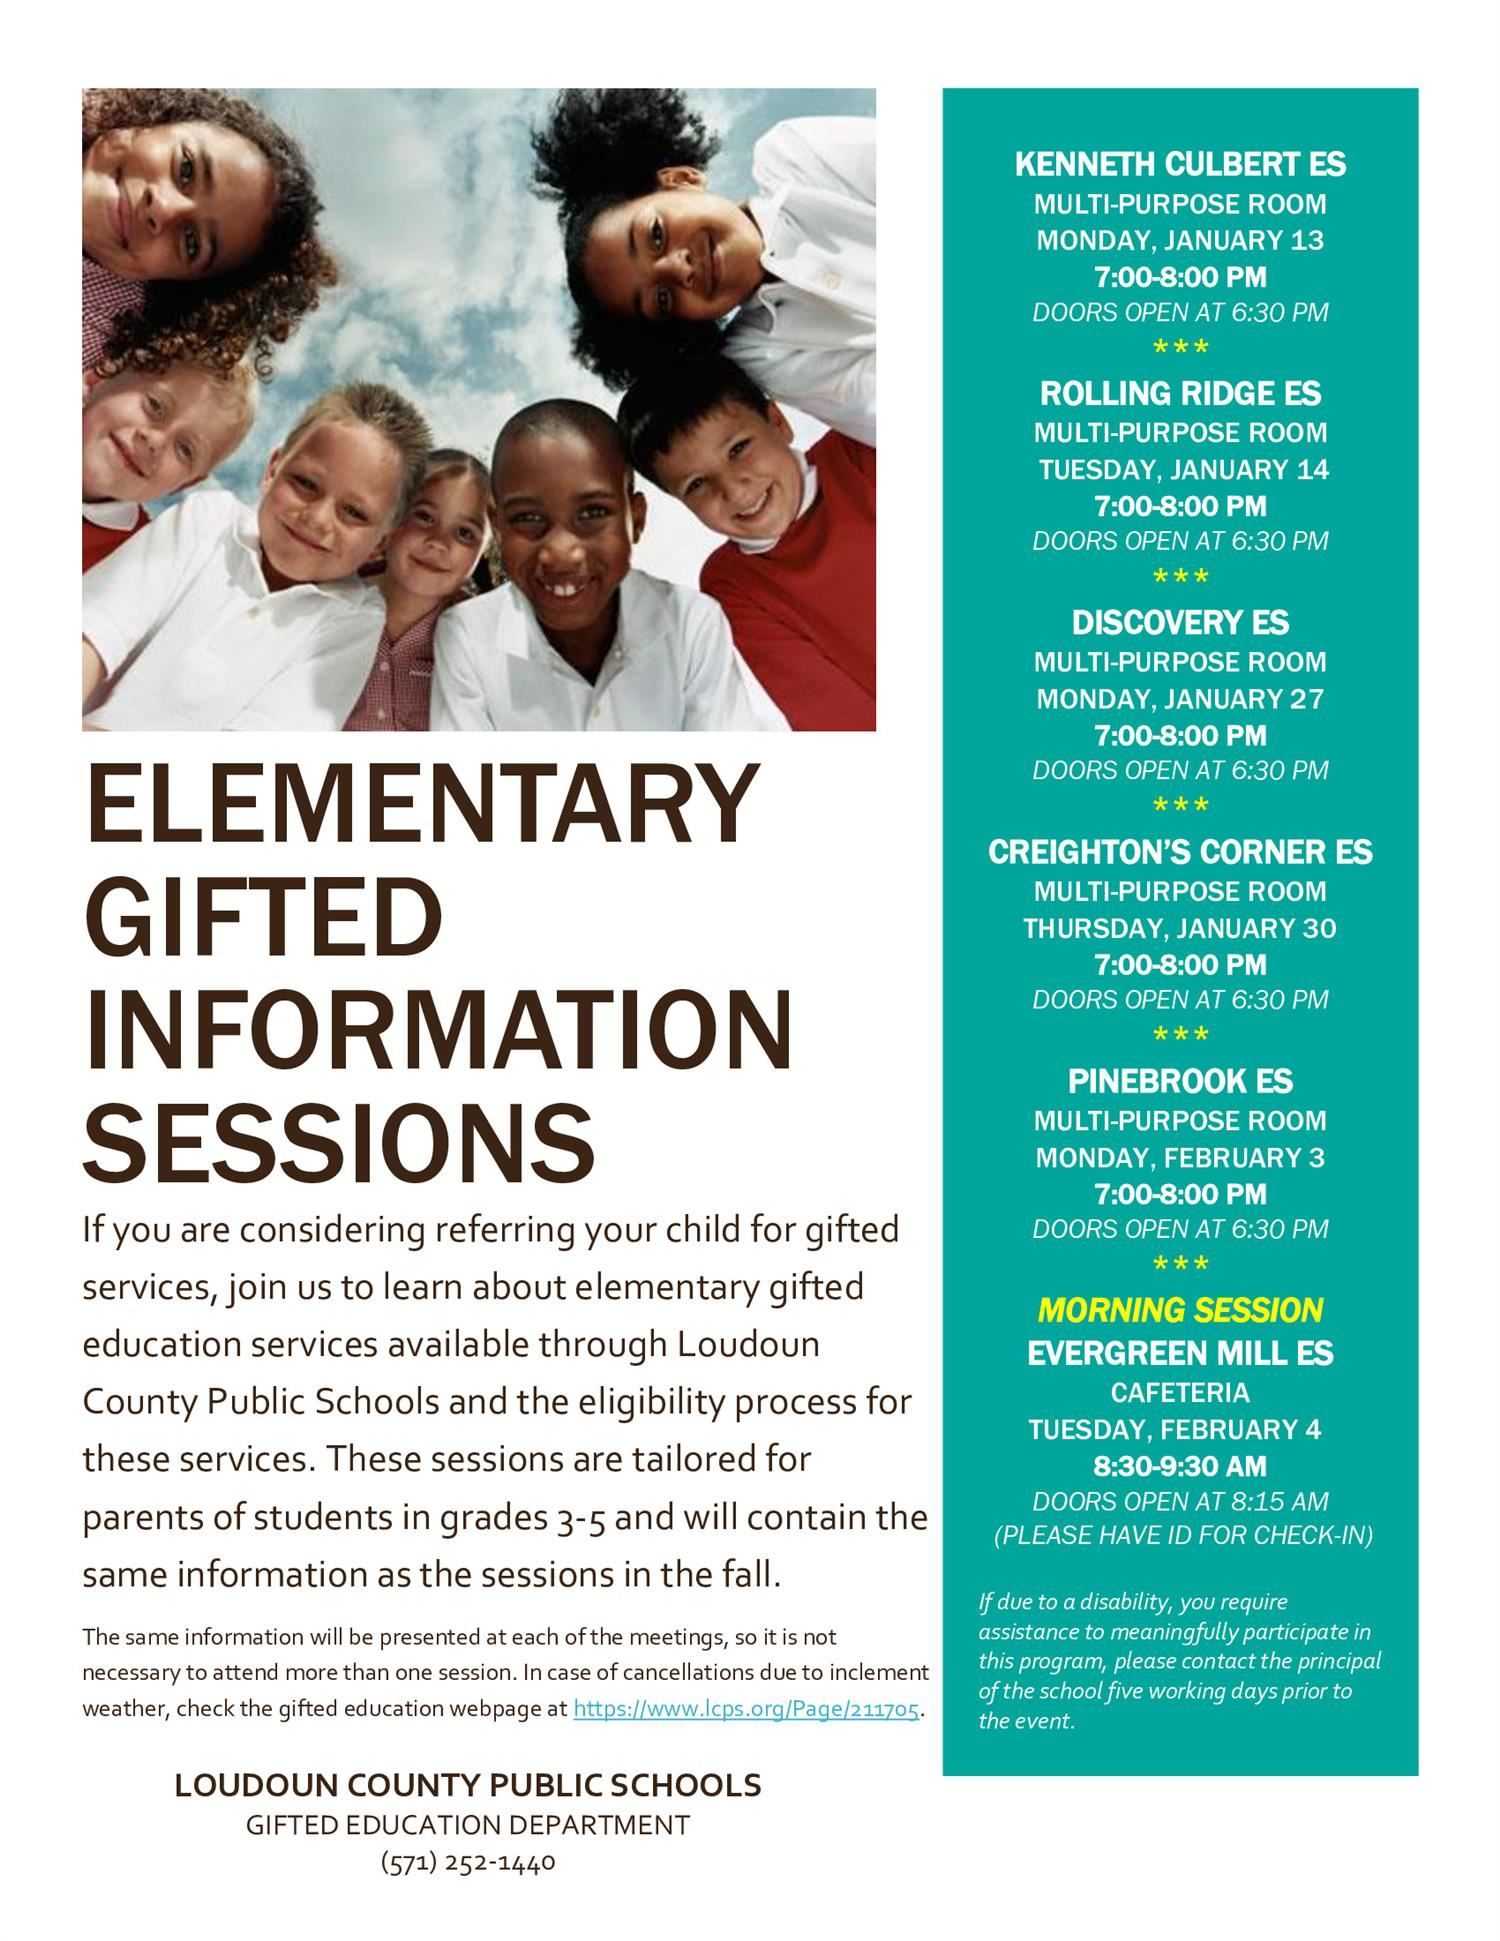 Gifted Information Session